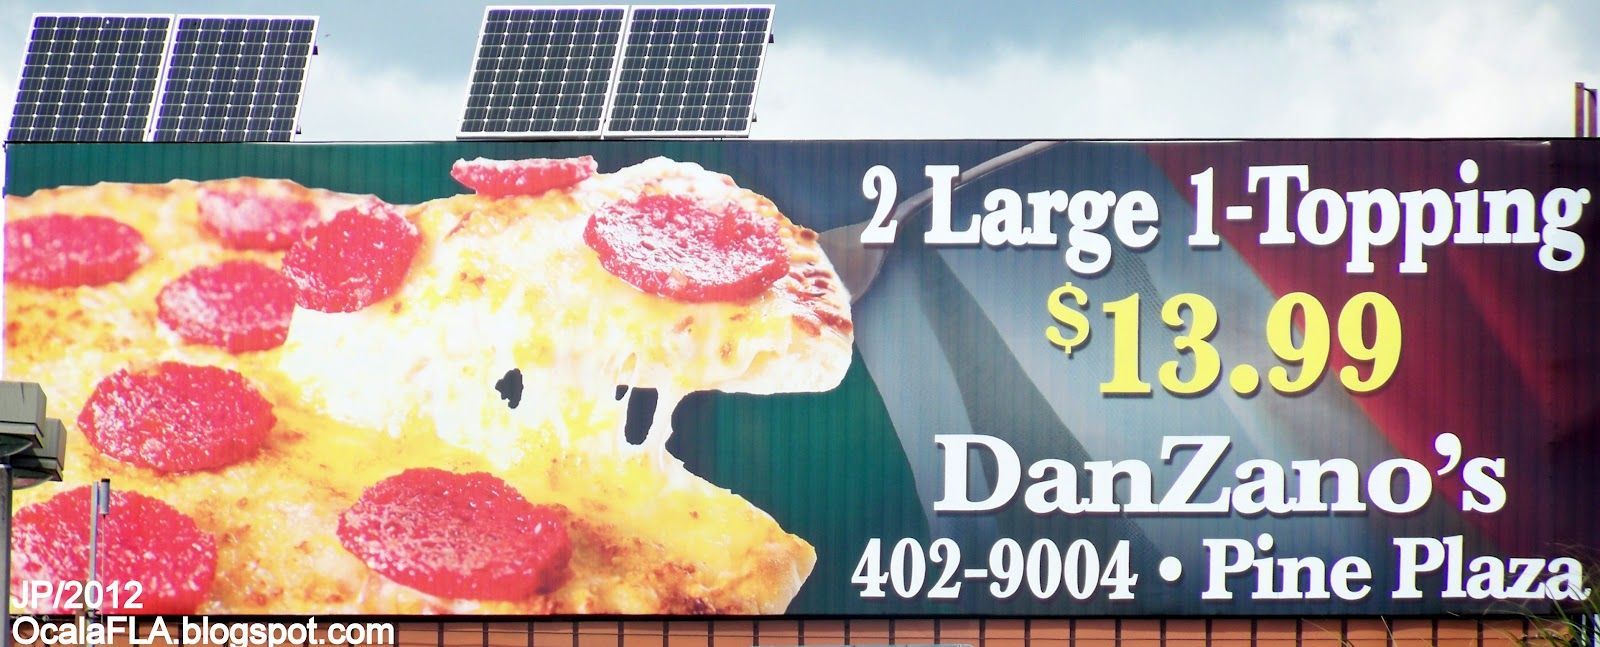 Marion's pizza coupons ohio